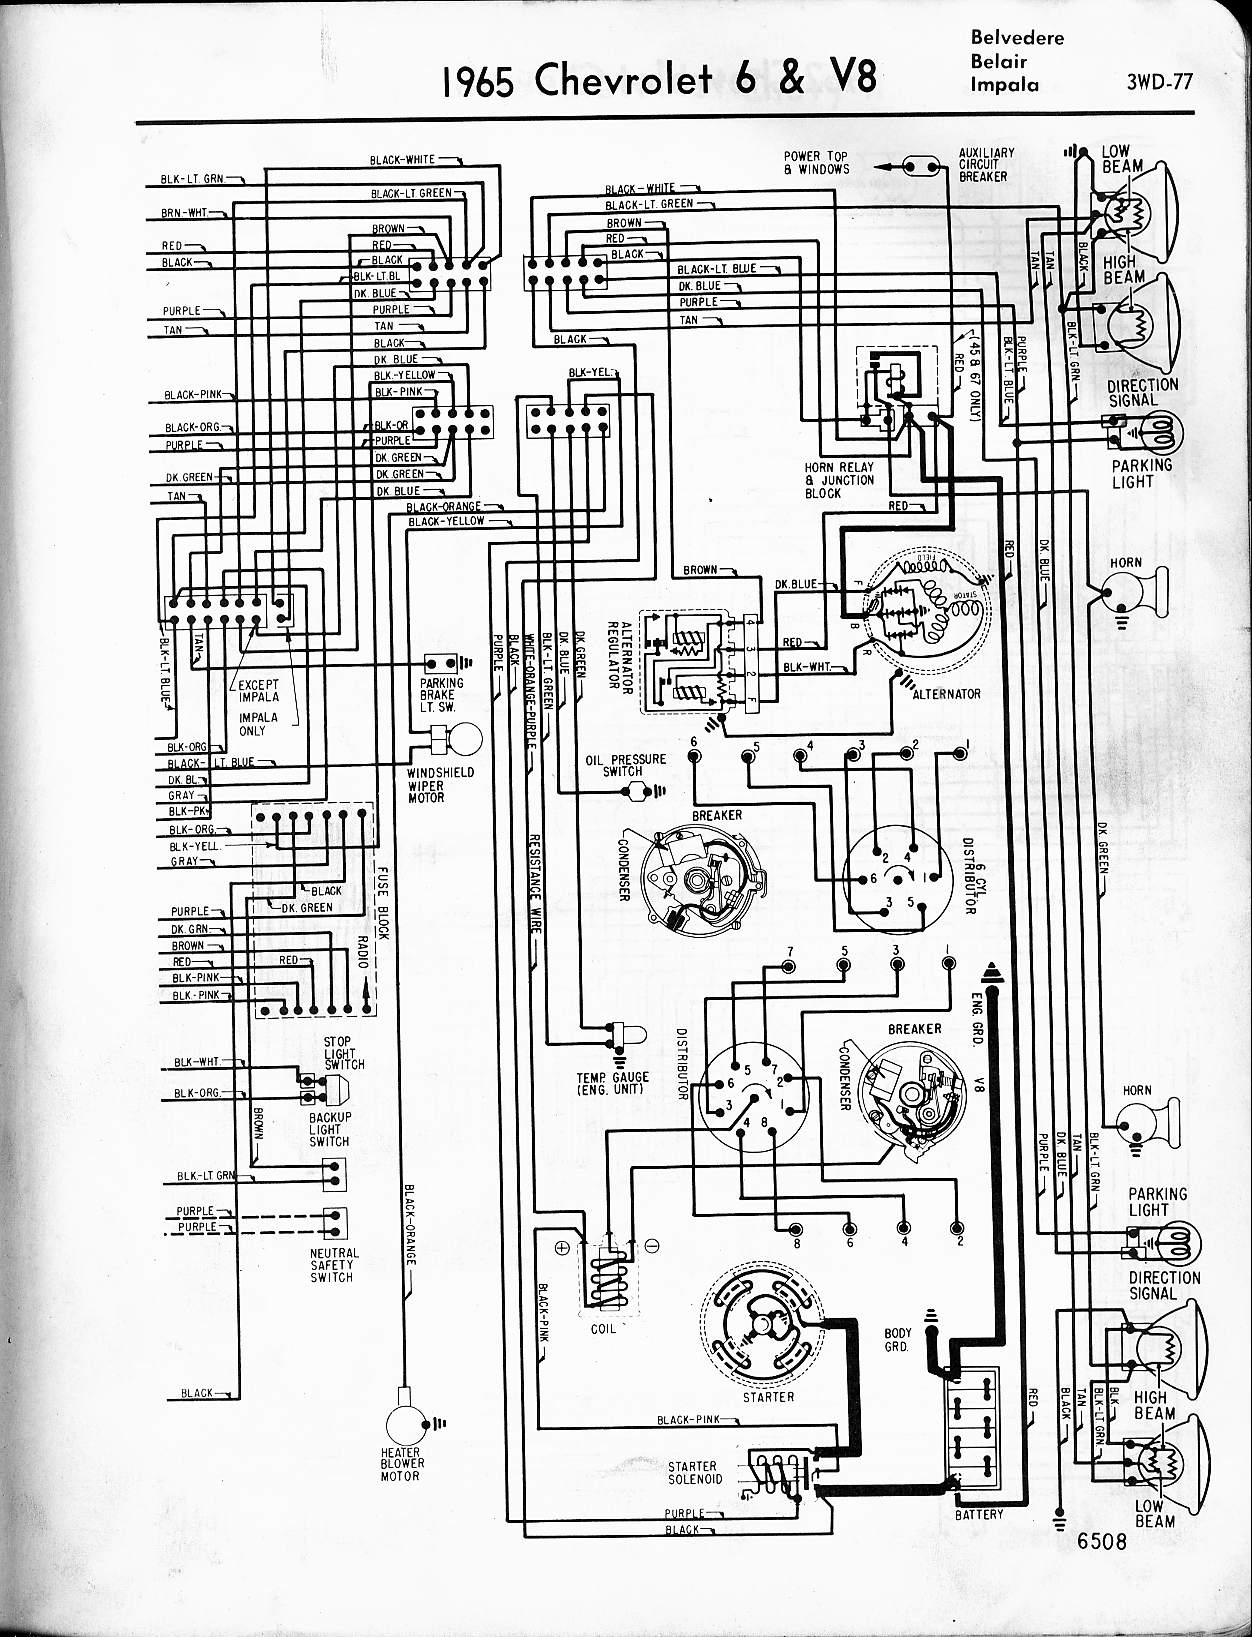 MWireChev65_3WD 077 chevy diagrams 1964 impala wiring diagram at webbmarketing.co